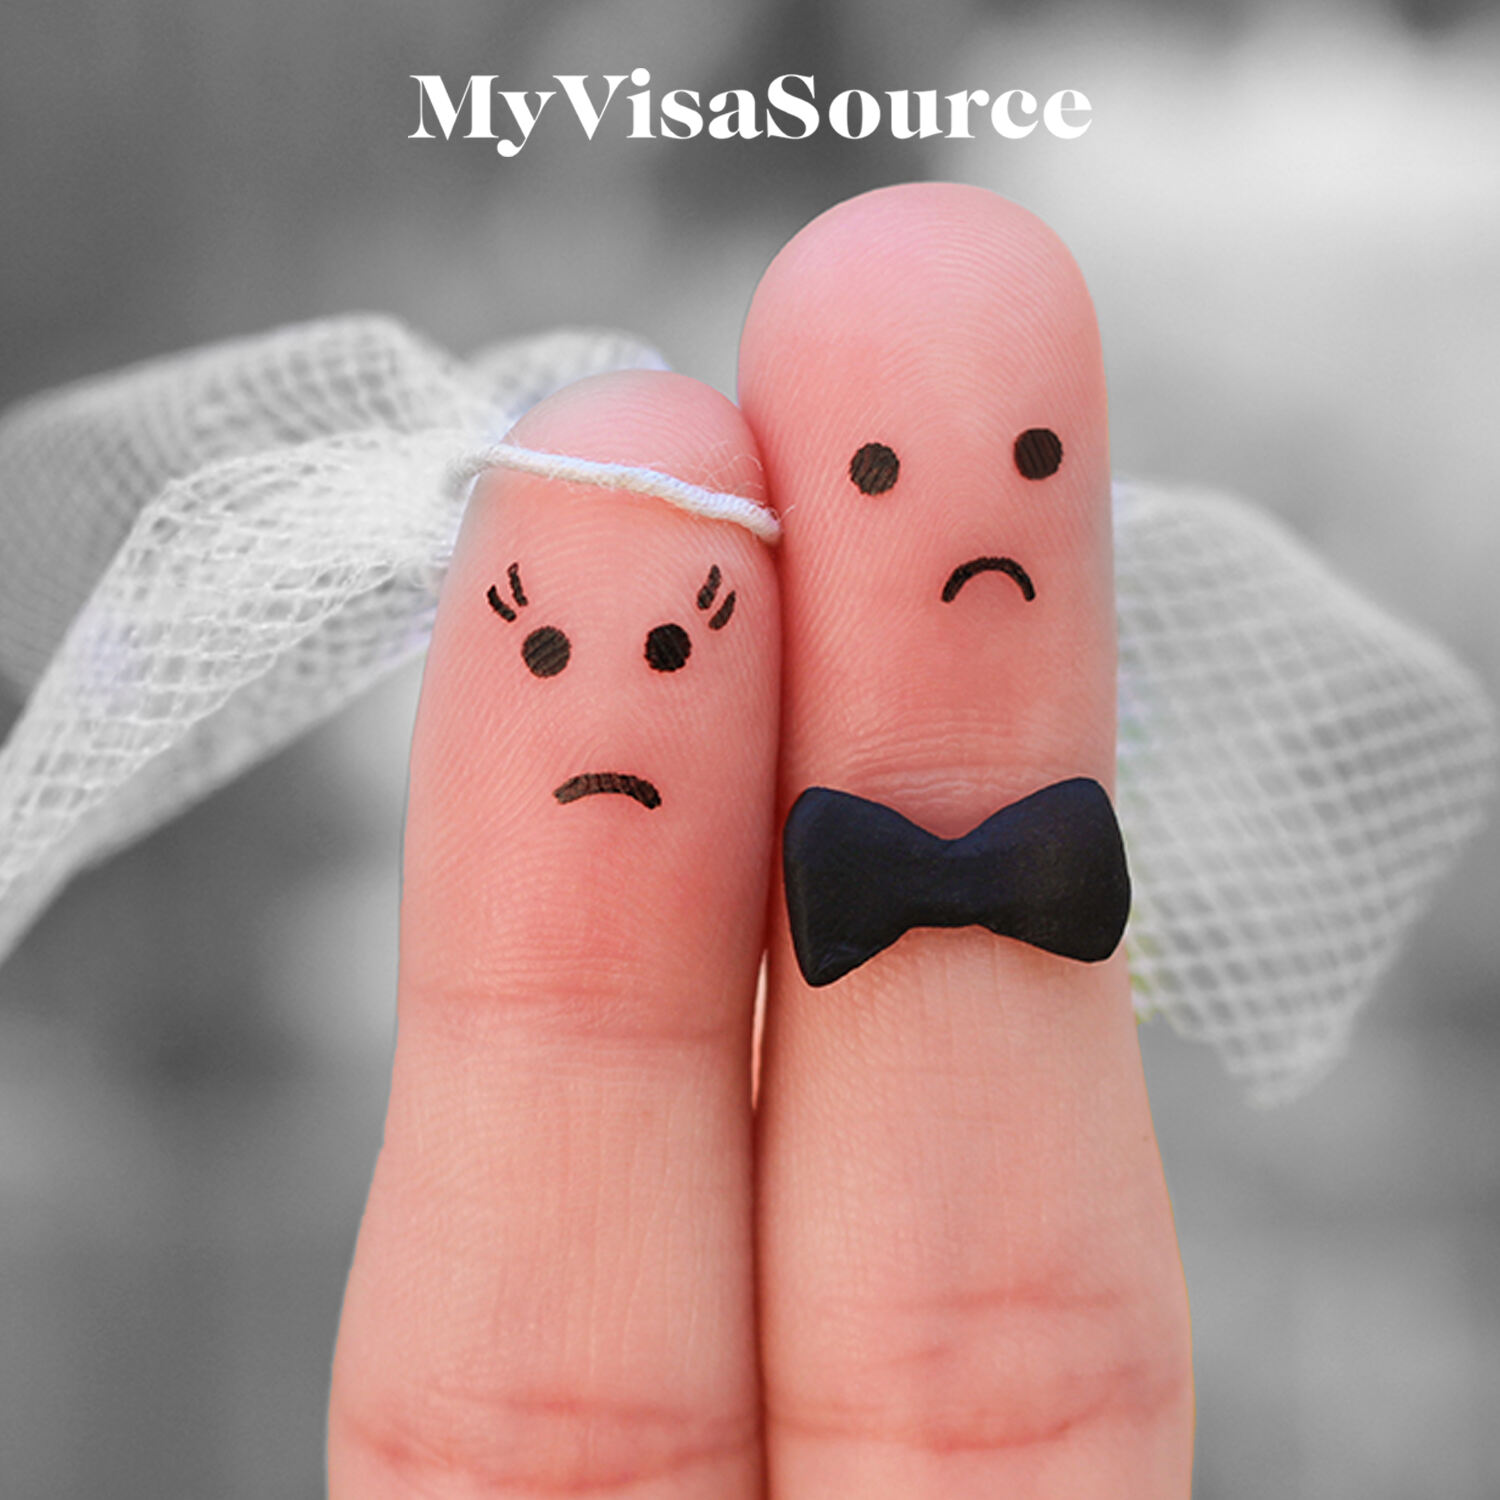 2 fingers dressed as married couple with unhappy faces drawn on my visa source